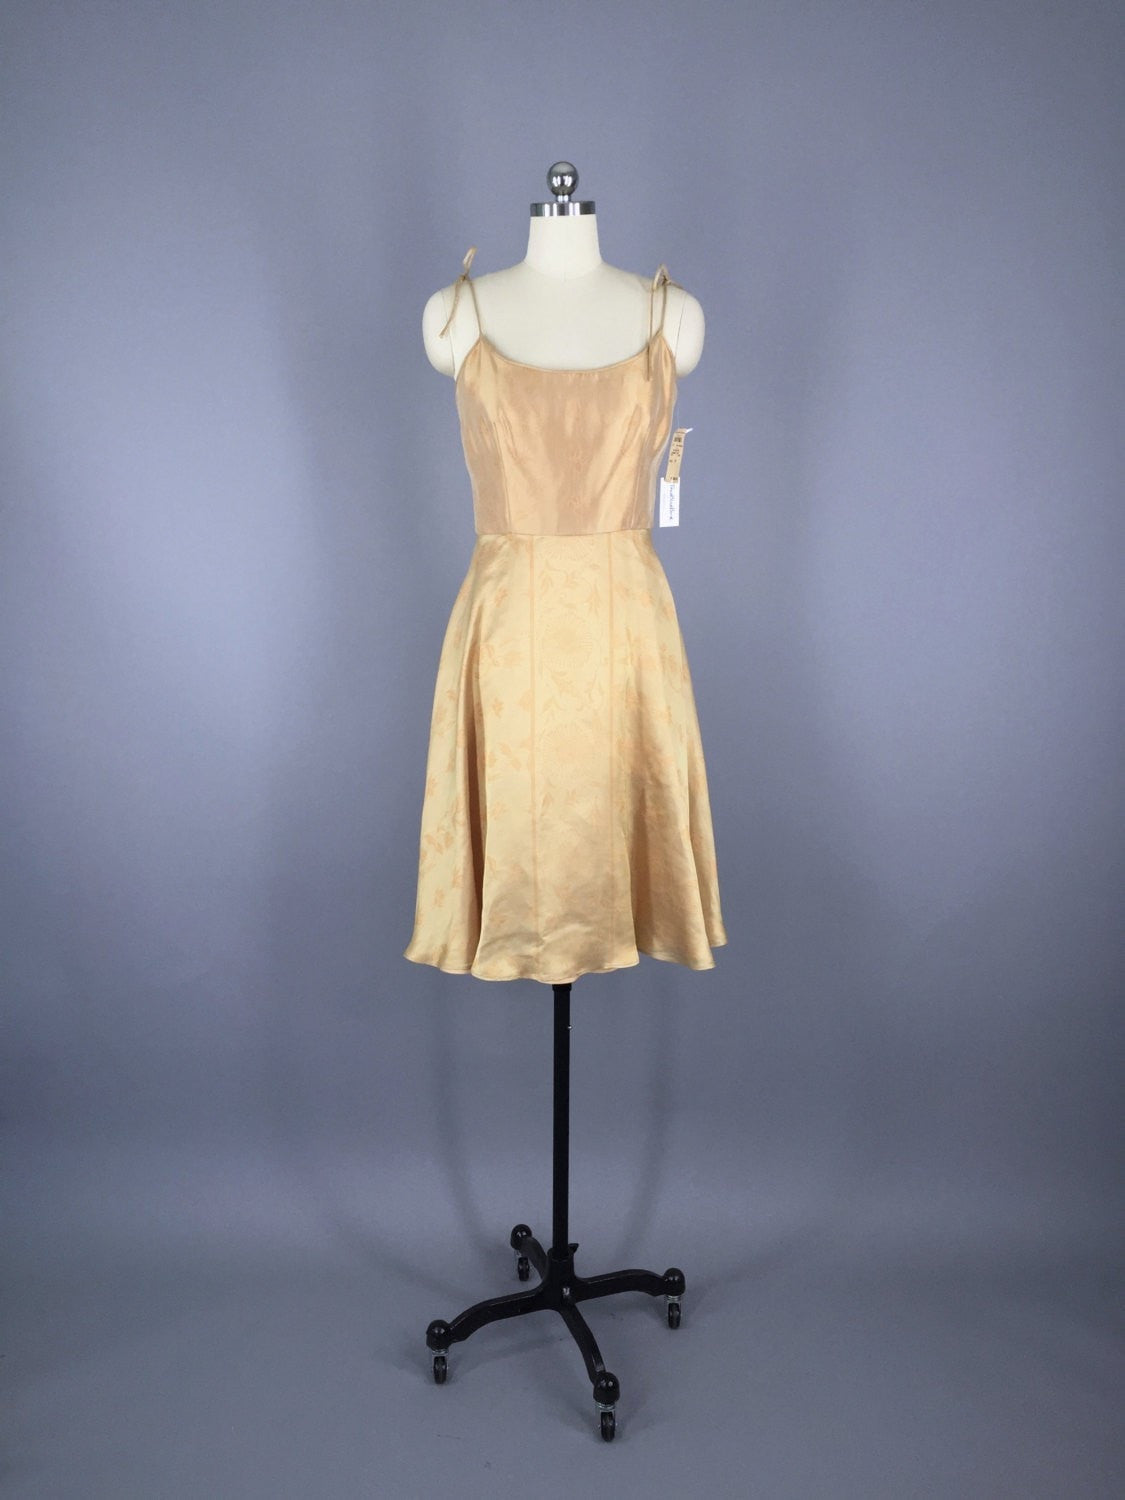 1990s Vintage Giorgio Armani Gold Cocktail Dress with Original Bergdorf Goodman Tags Dress ThisBlueBird